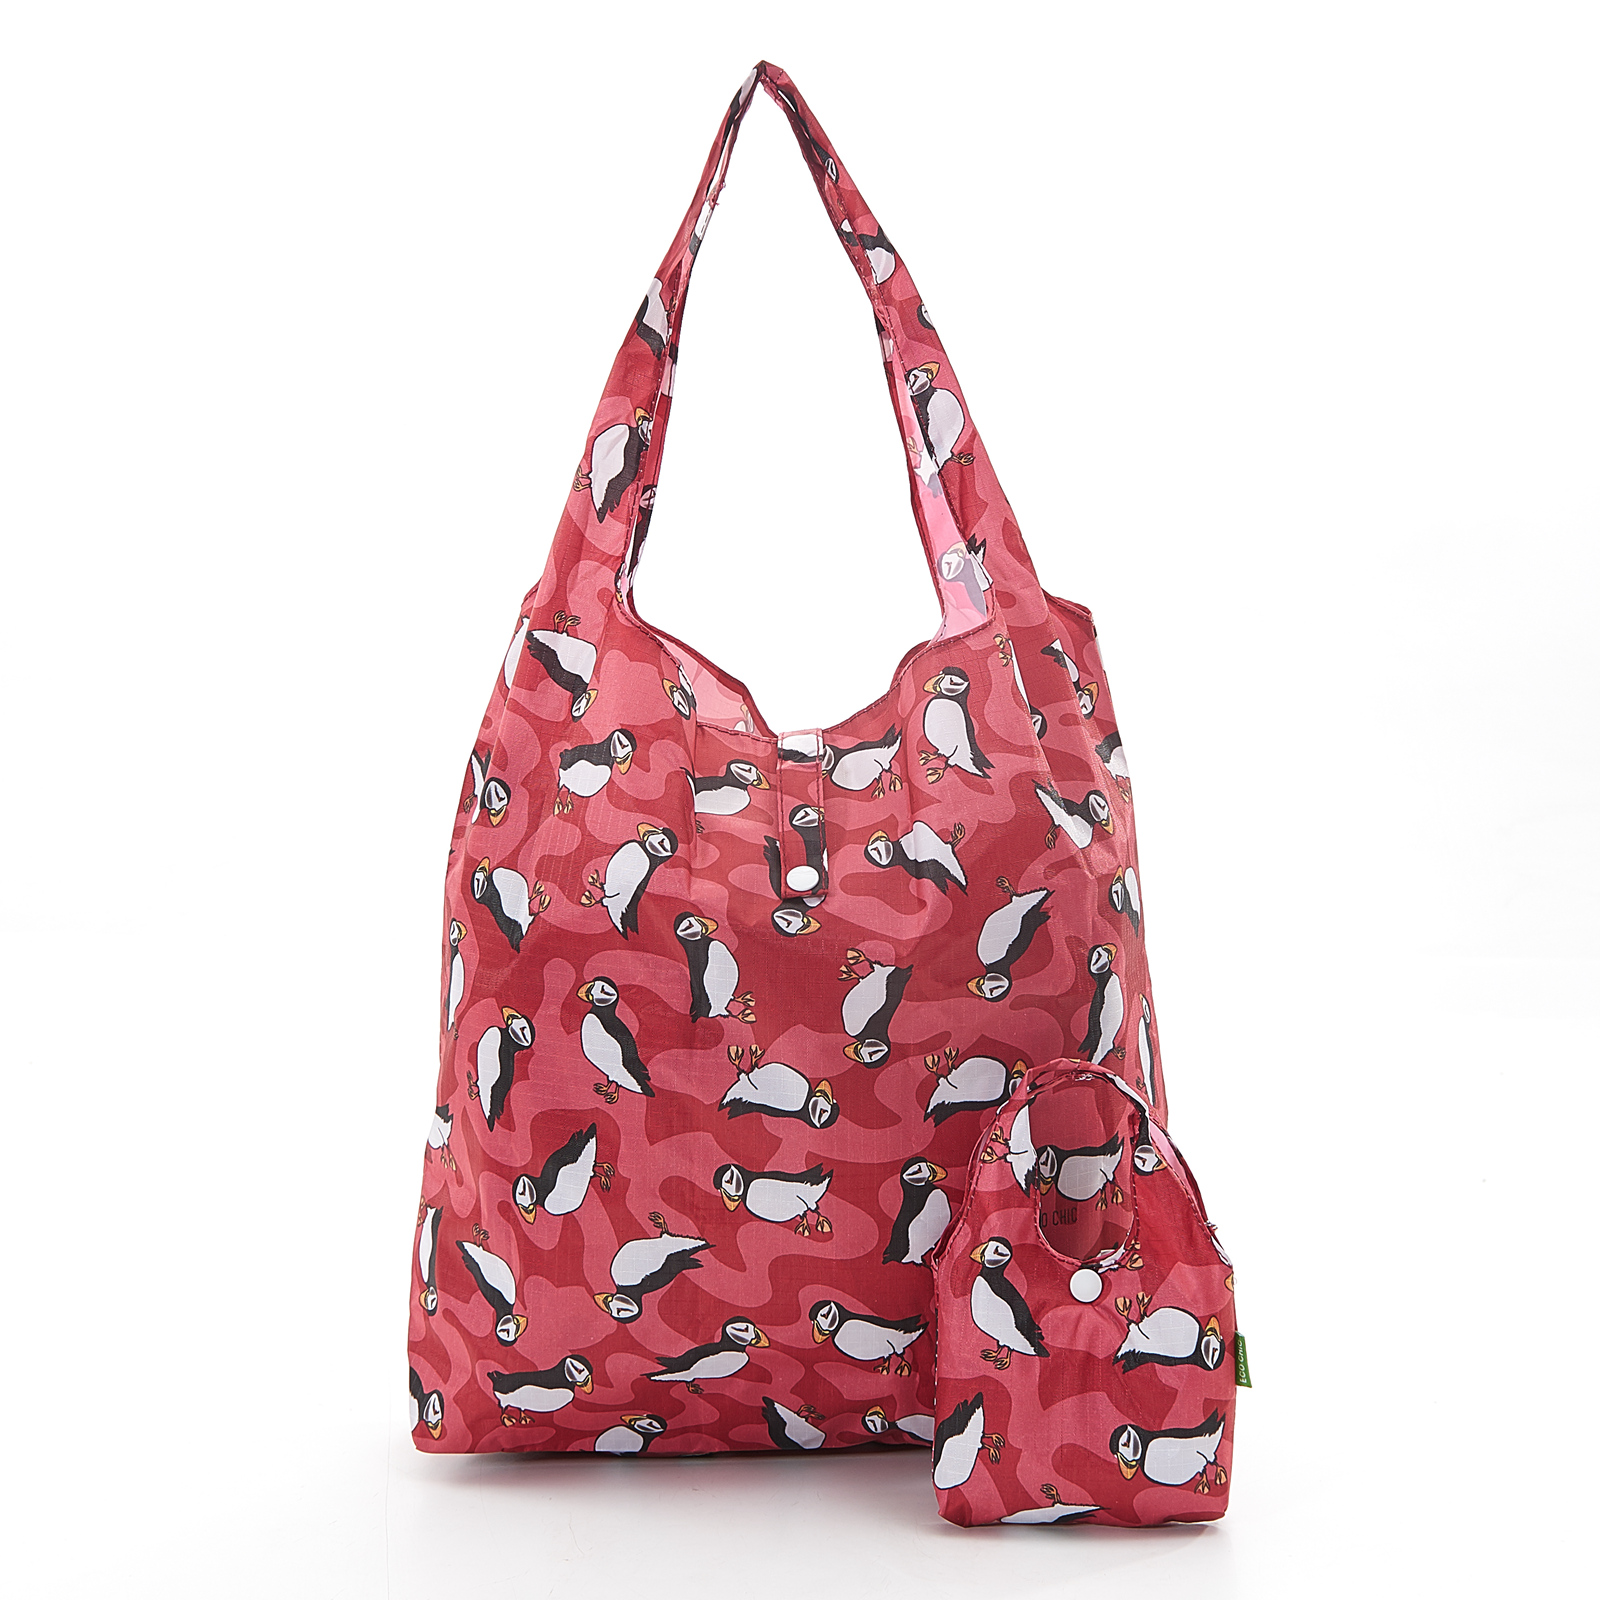 Foldaway shopping bag, puffins product photo Front View - additional image 1 T